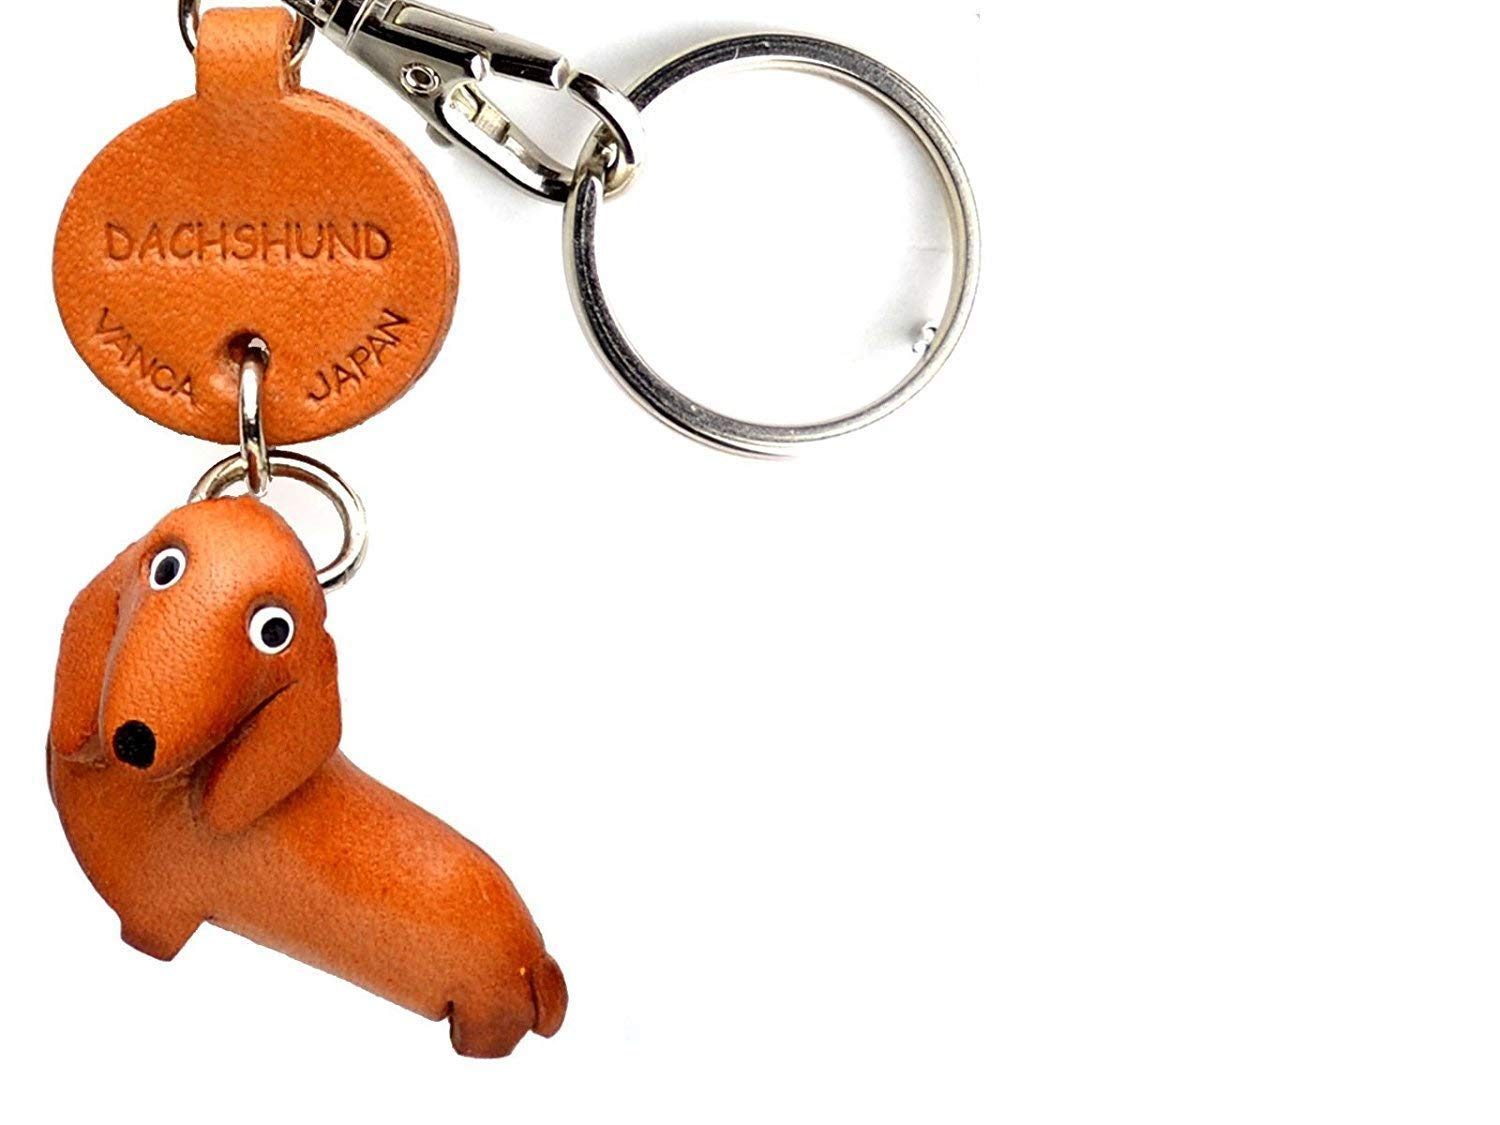 Dachshund Leather Dog Small Keychain VANCA CRAFT-Collectible Keyring Charm Pendant Made in Japan